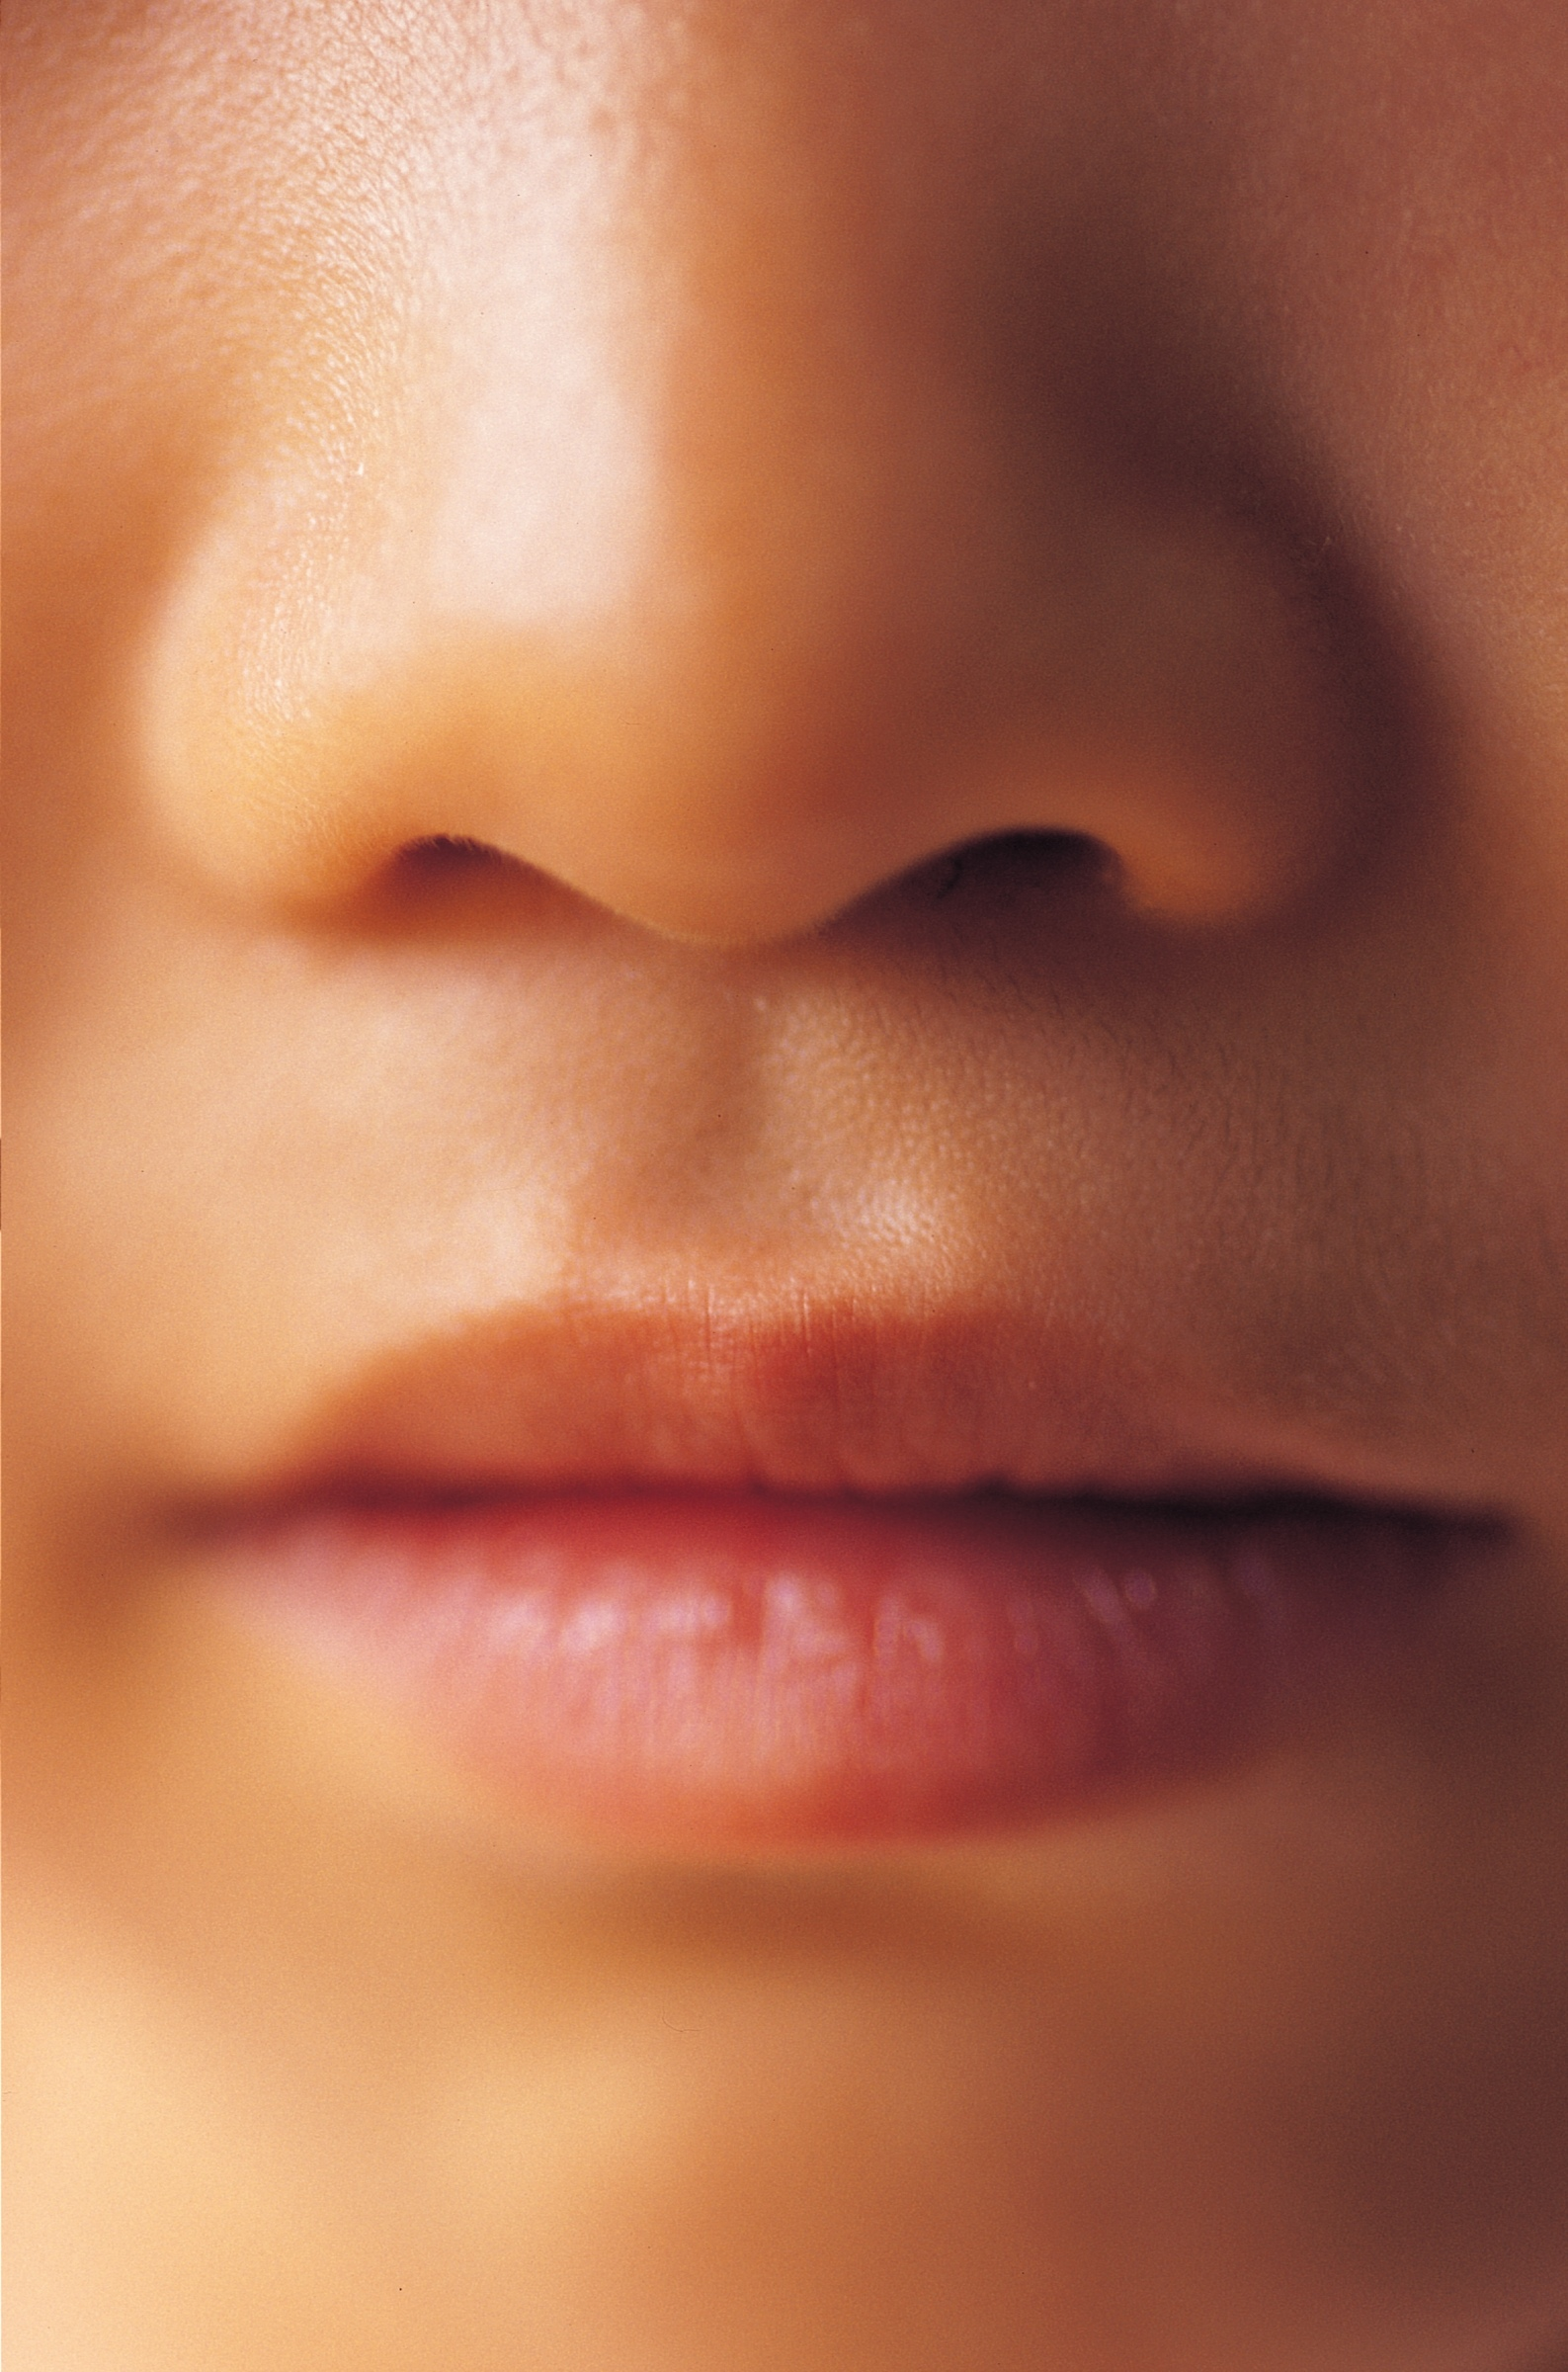 Electronic Nose Is Designed to Nose